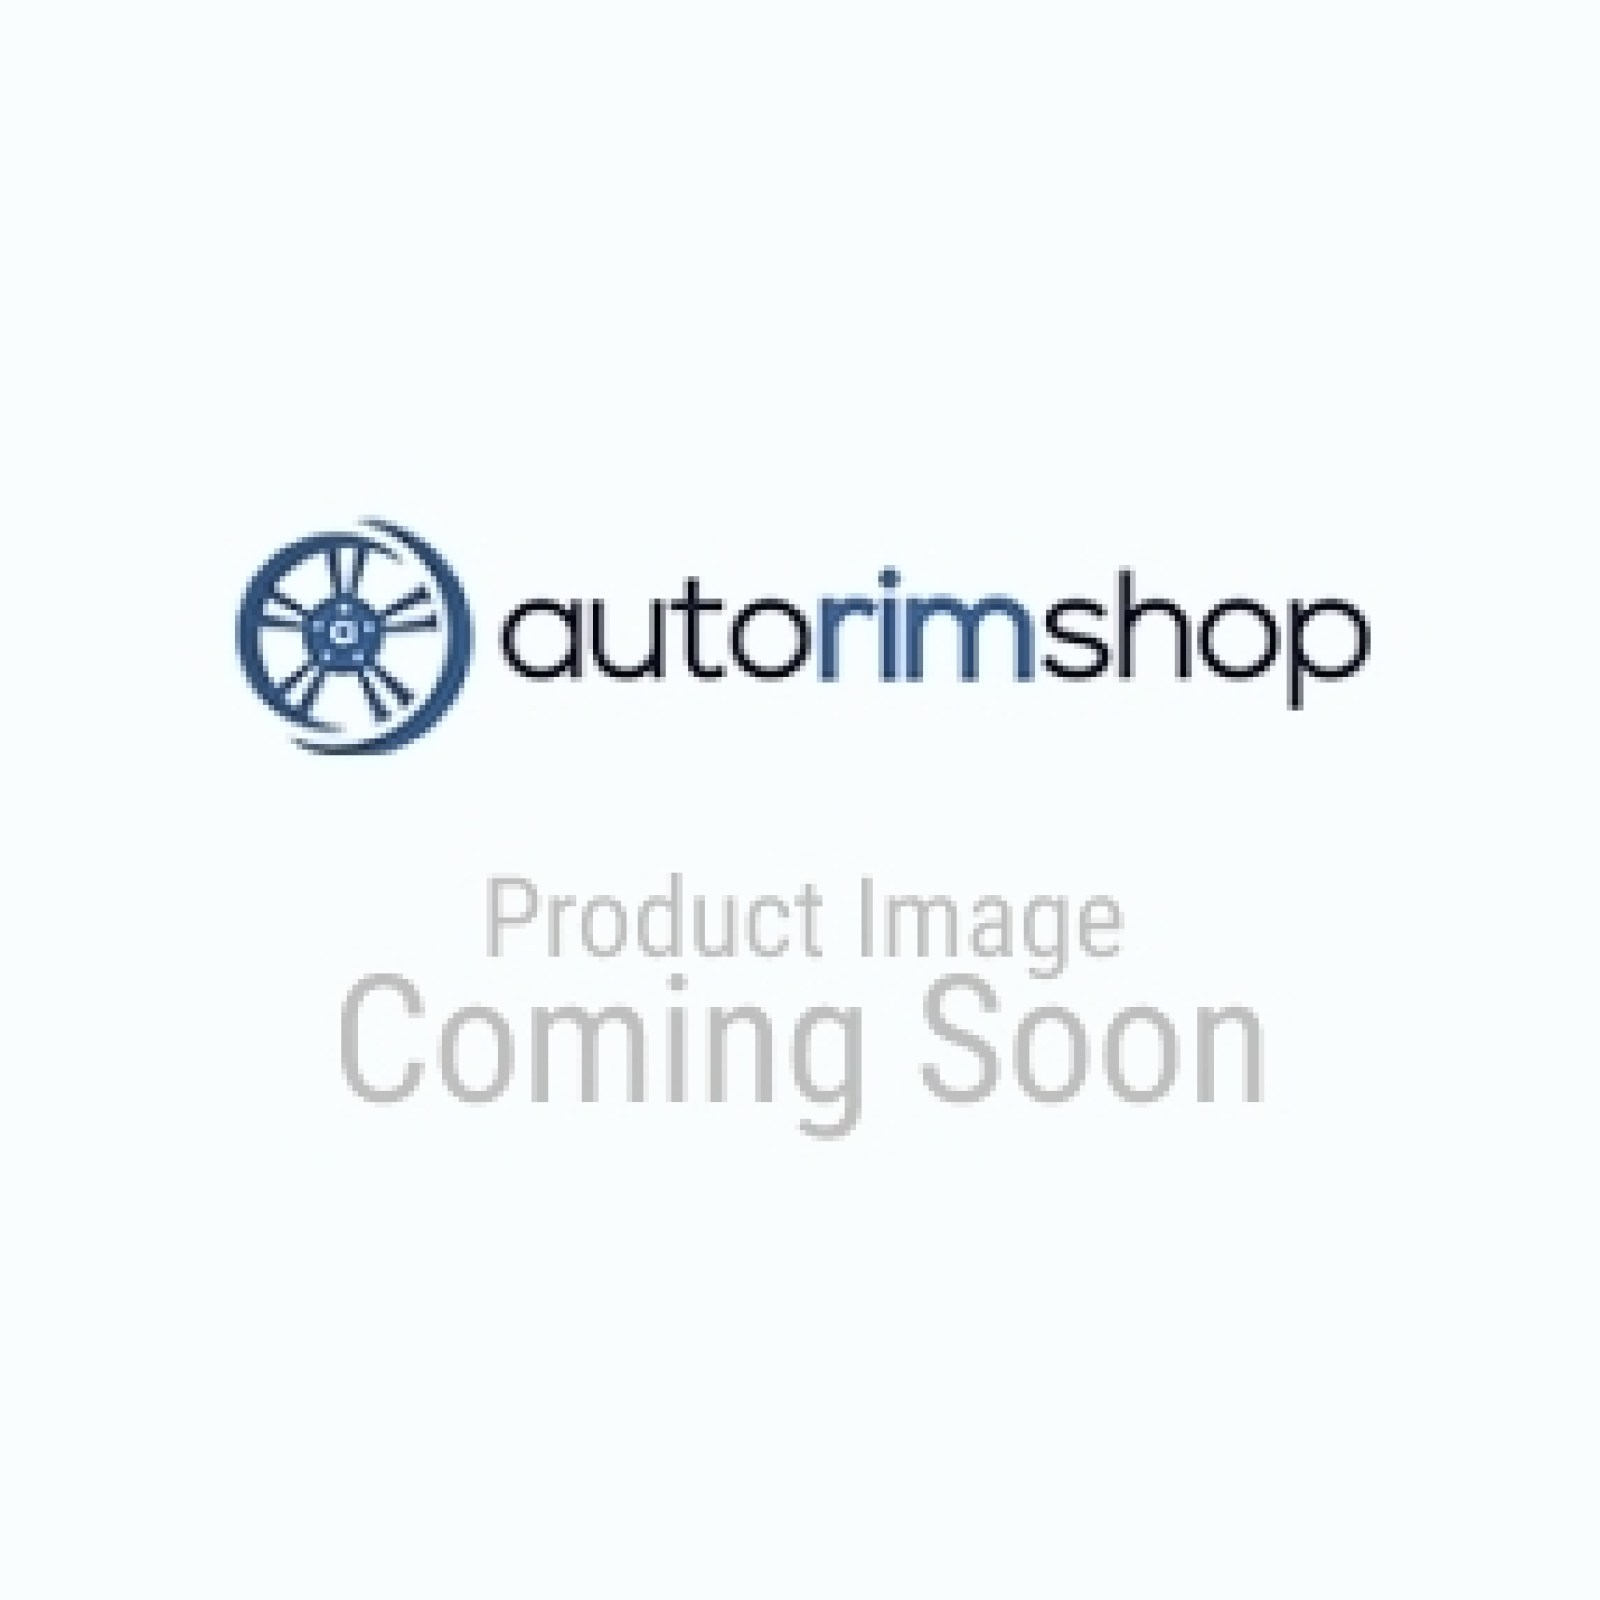 Used 2013 Lexus IS350 Other Wheels Tires & Parts for Sale